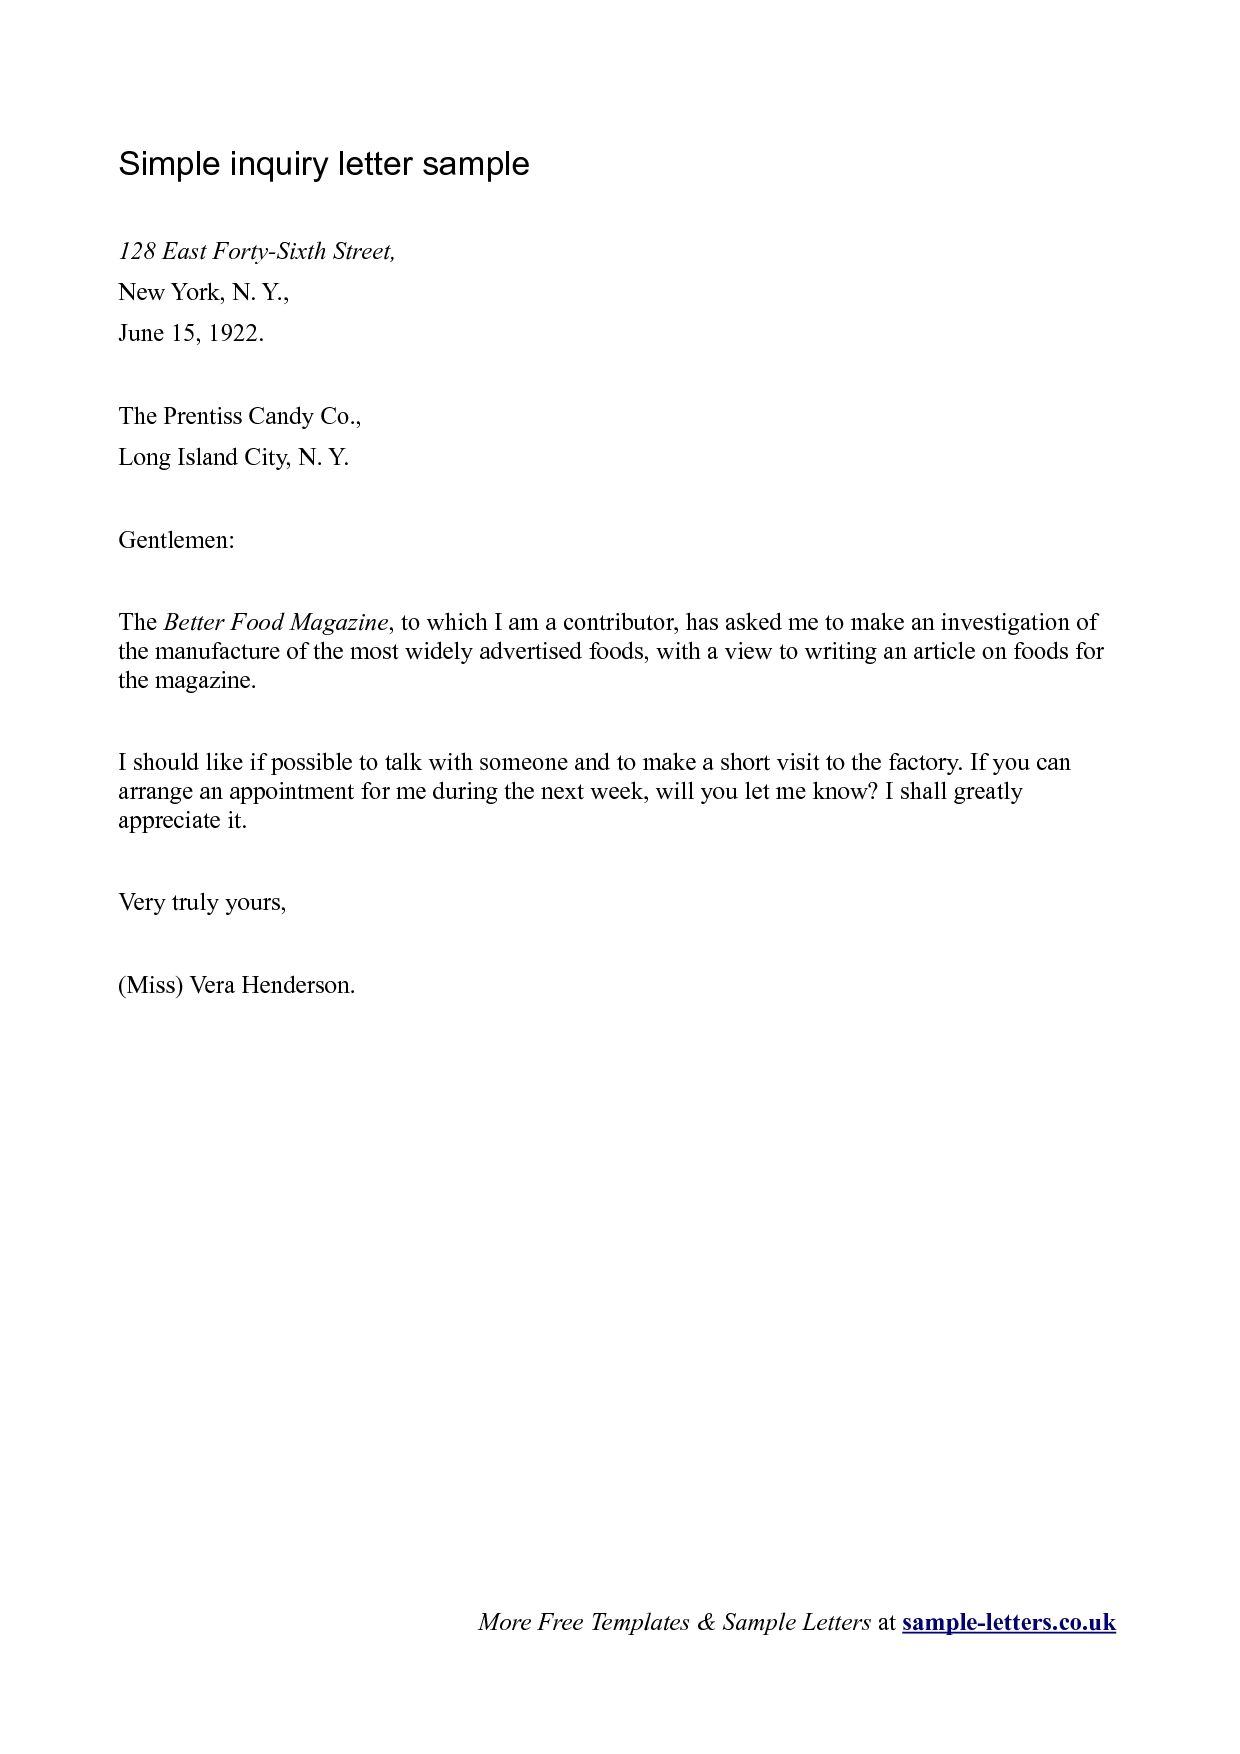 Business Letter Of Inquiry Sample The Letter Sample Reading And - Make a will for free template